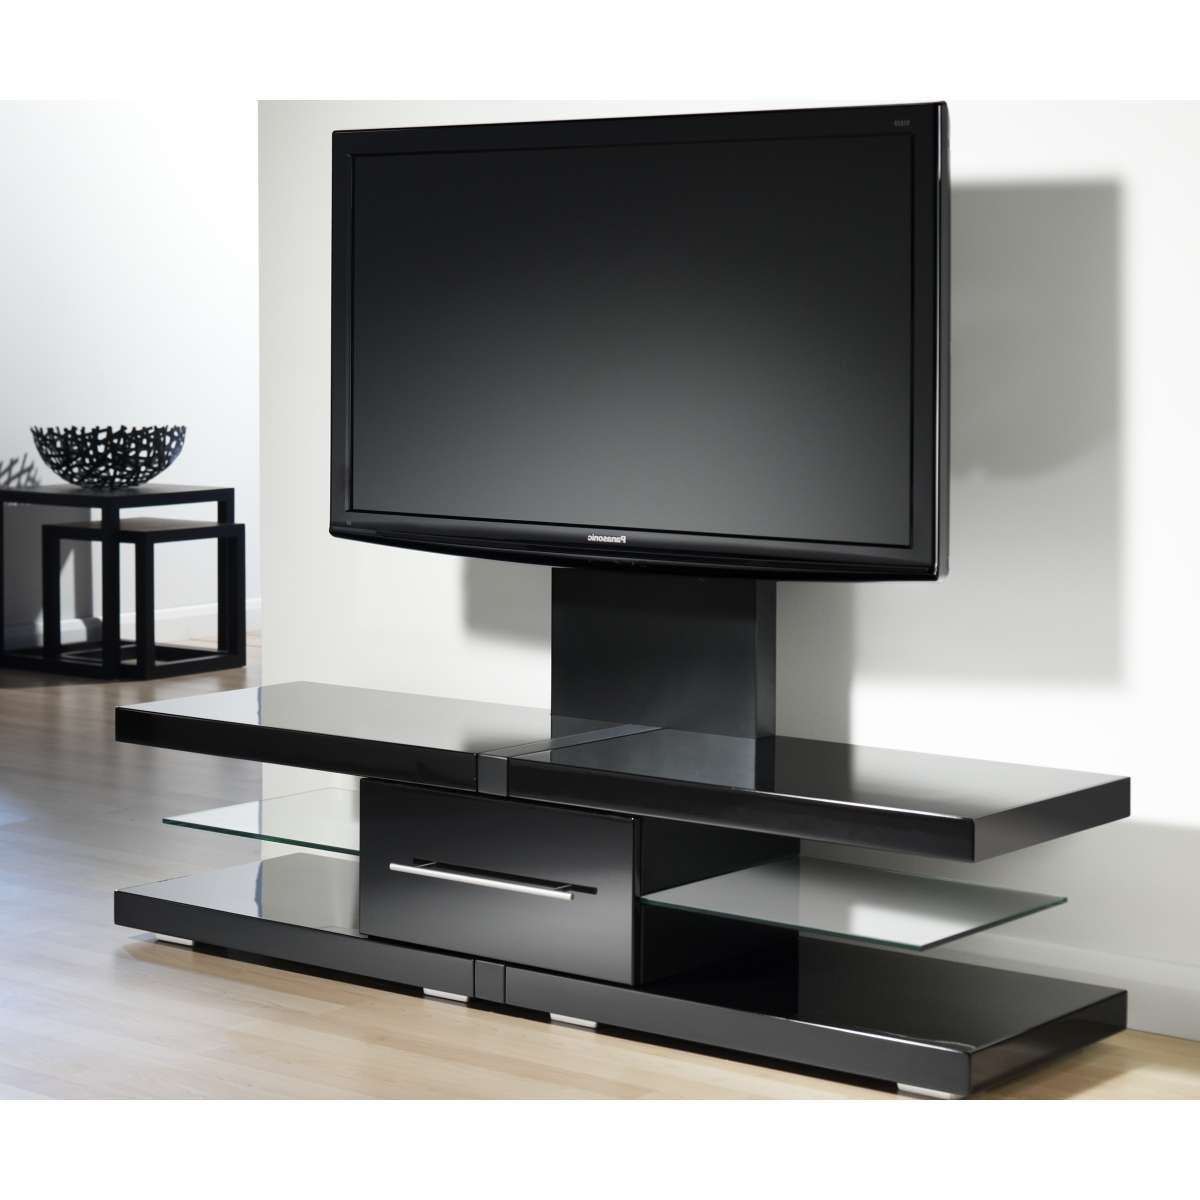 Modern Glossy Black Flat Screen Tv Stand With Mount And Glass Regarding Tv Stands With Mount (View 9 of 15)